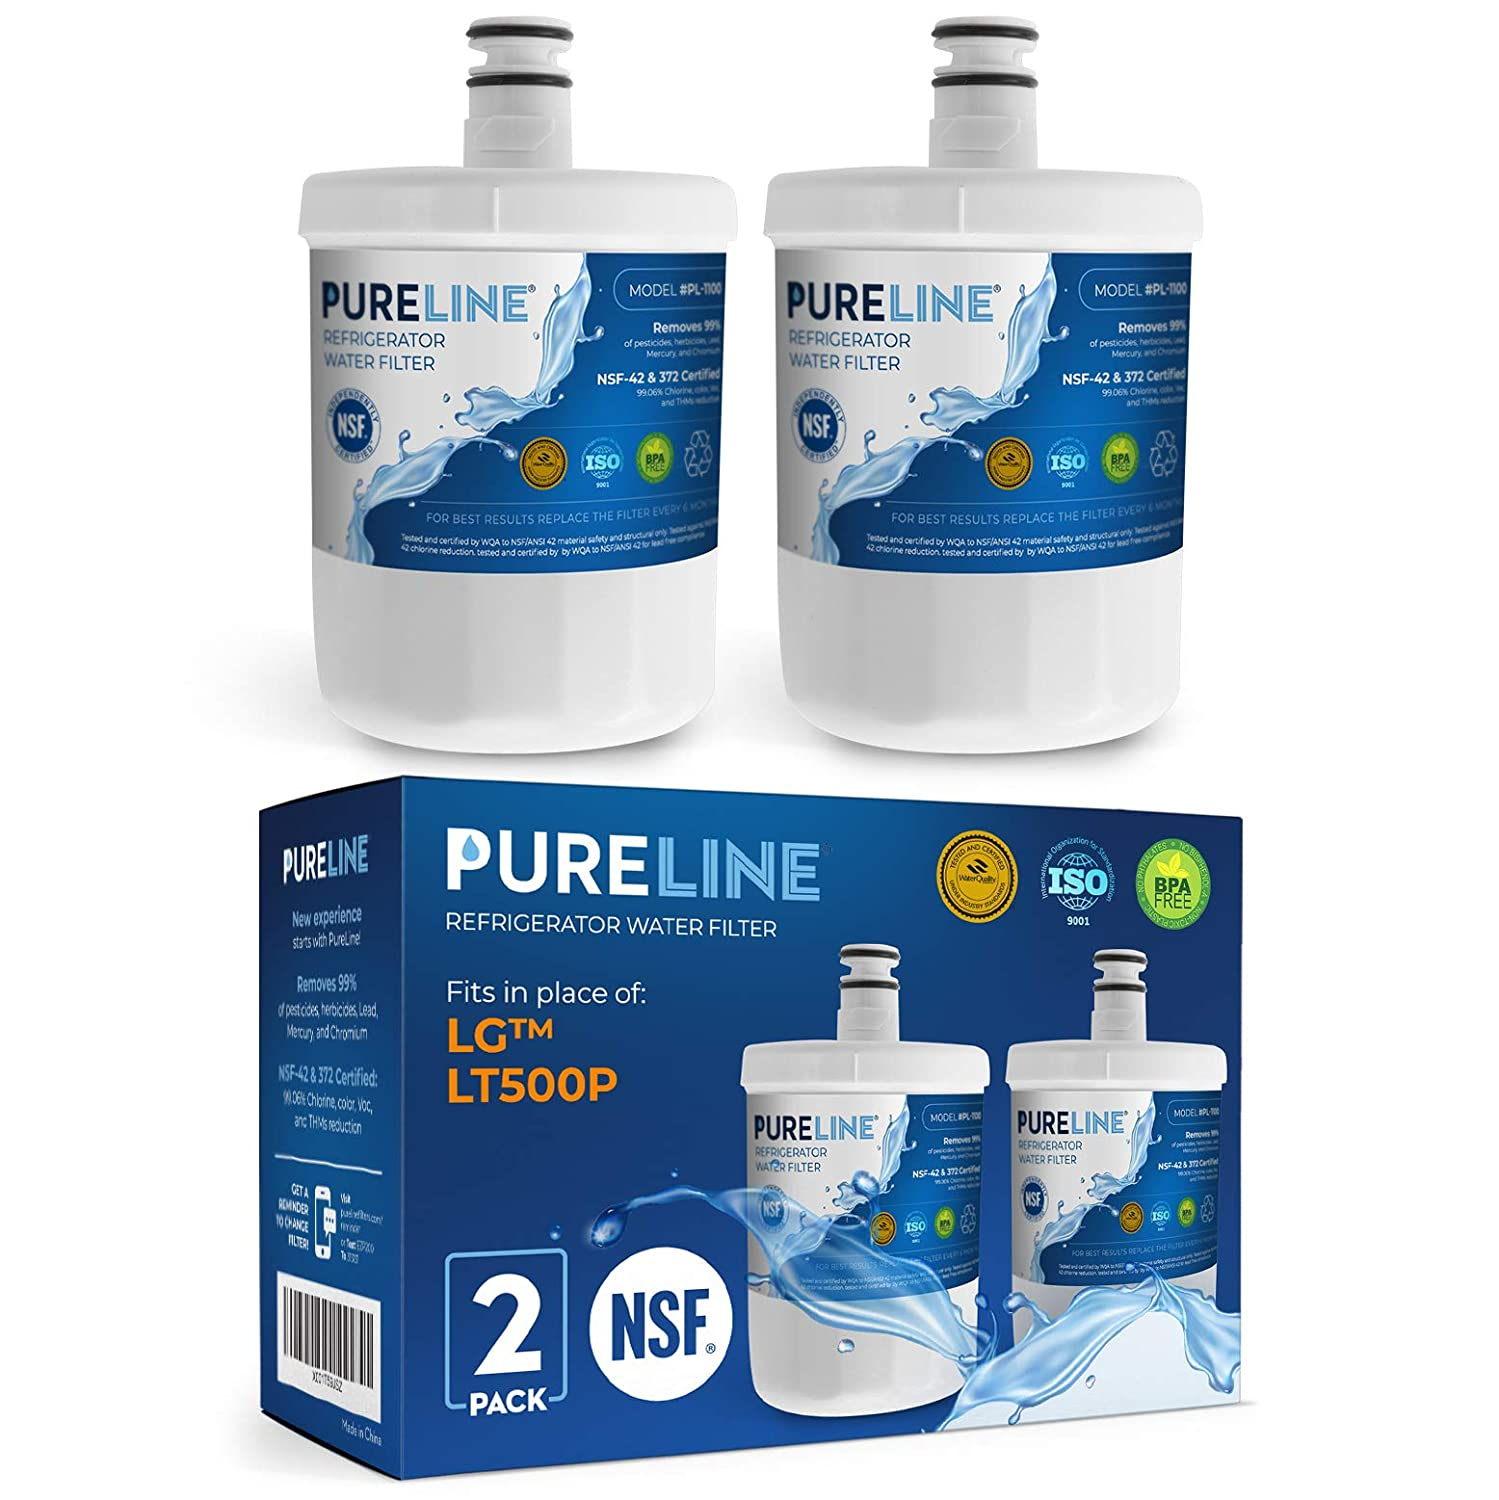 Kenmore 9890 and LG LT500P Water Filter Replacement. Also Compatible with LG gen11042fr-08, and Kenmore 9890. Designed to Exact Fit and Standard as Original.- PURELINE (2 Pack)